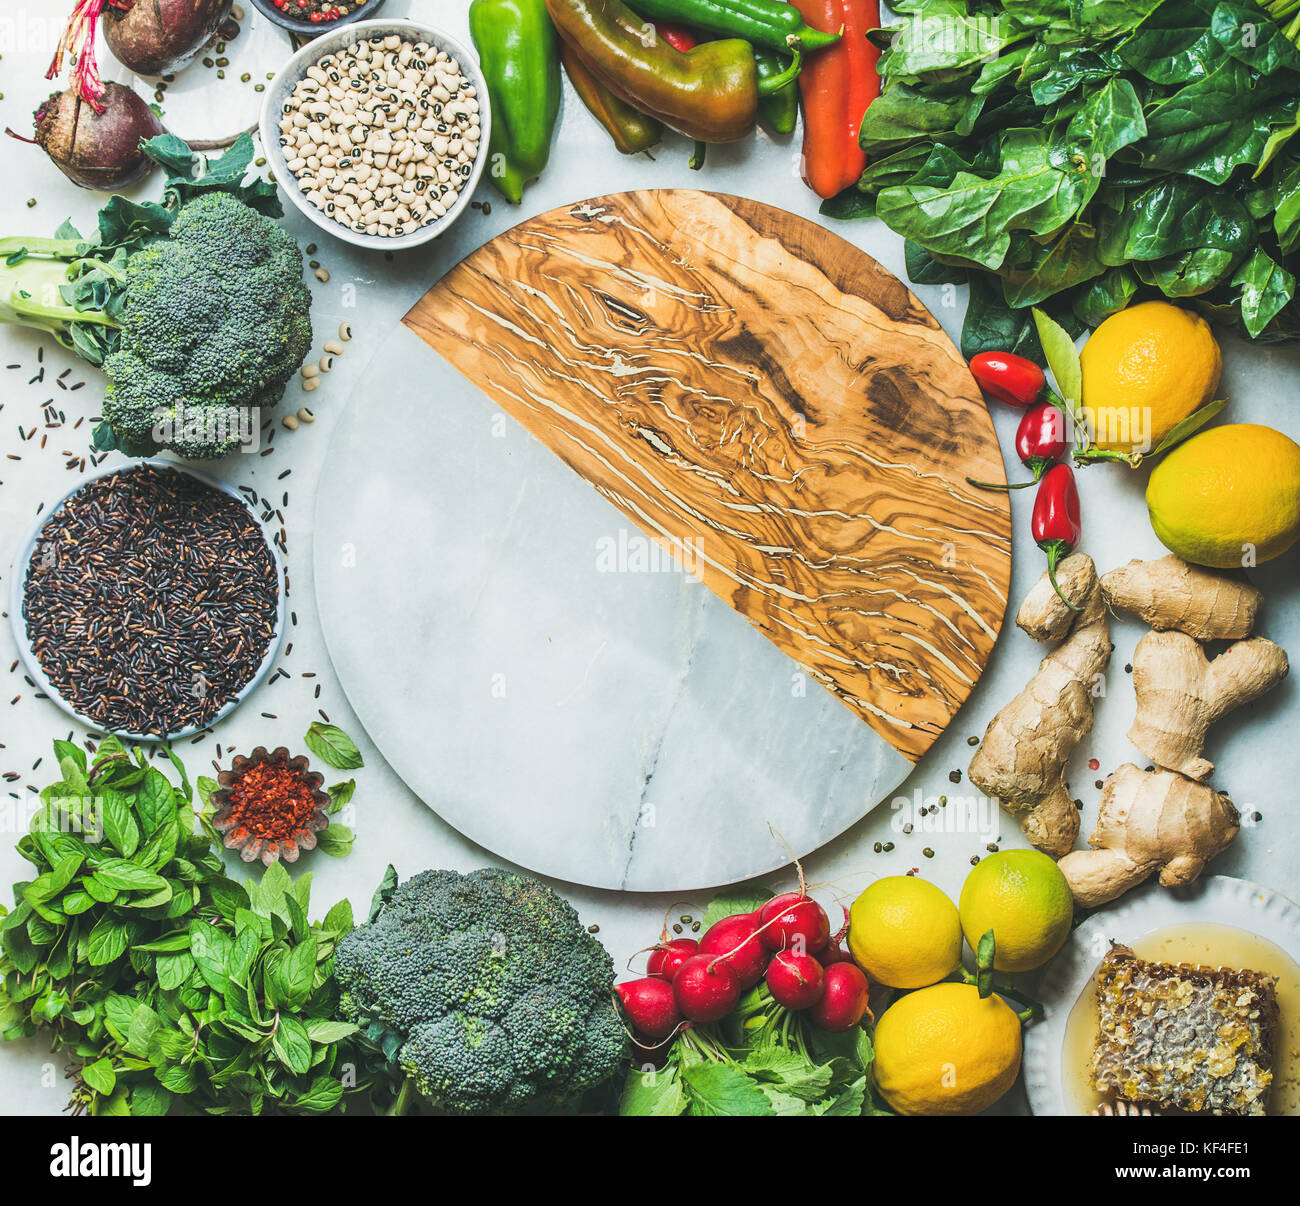 Clean eating healthy cooking ingredients with round board in center - Stock Image